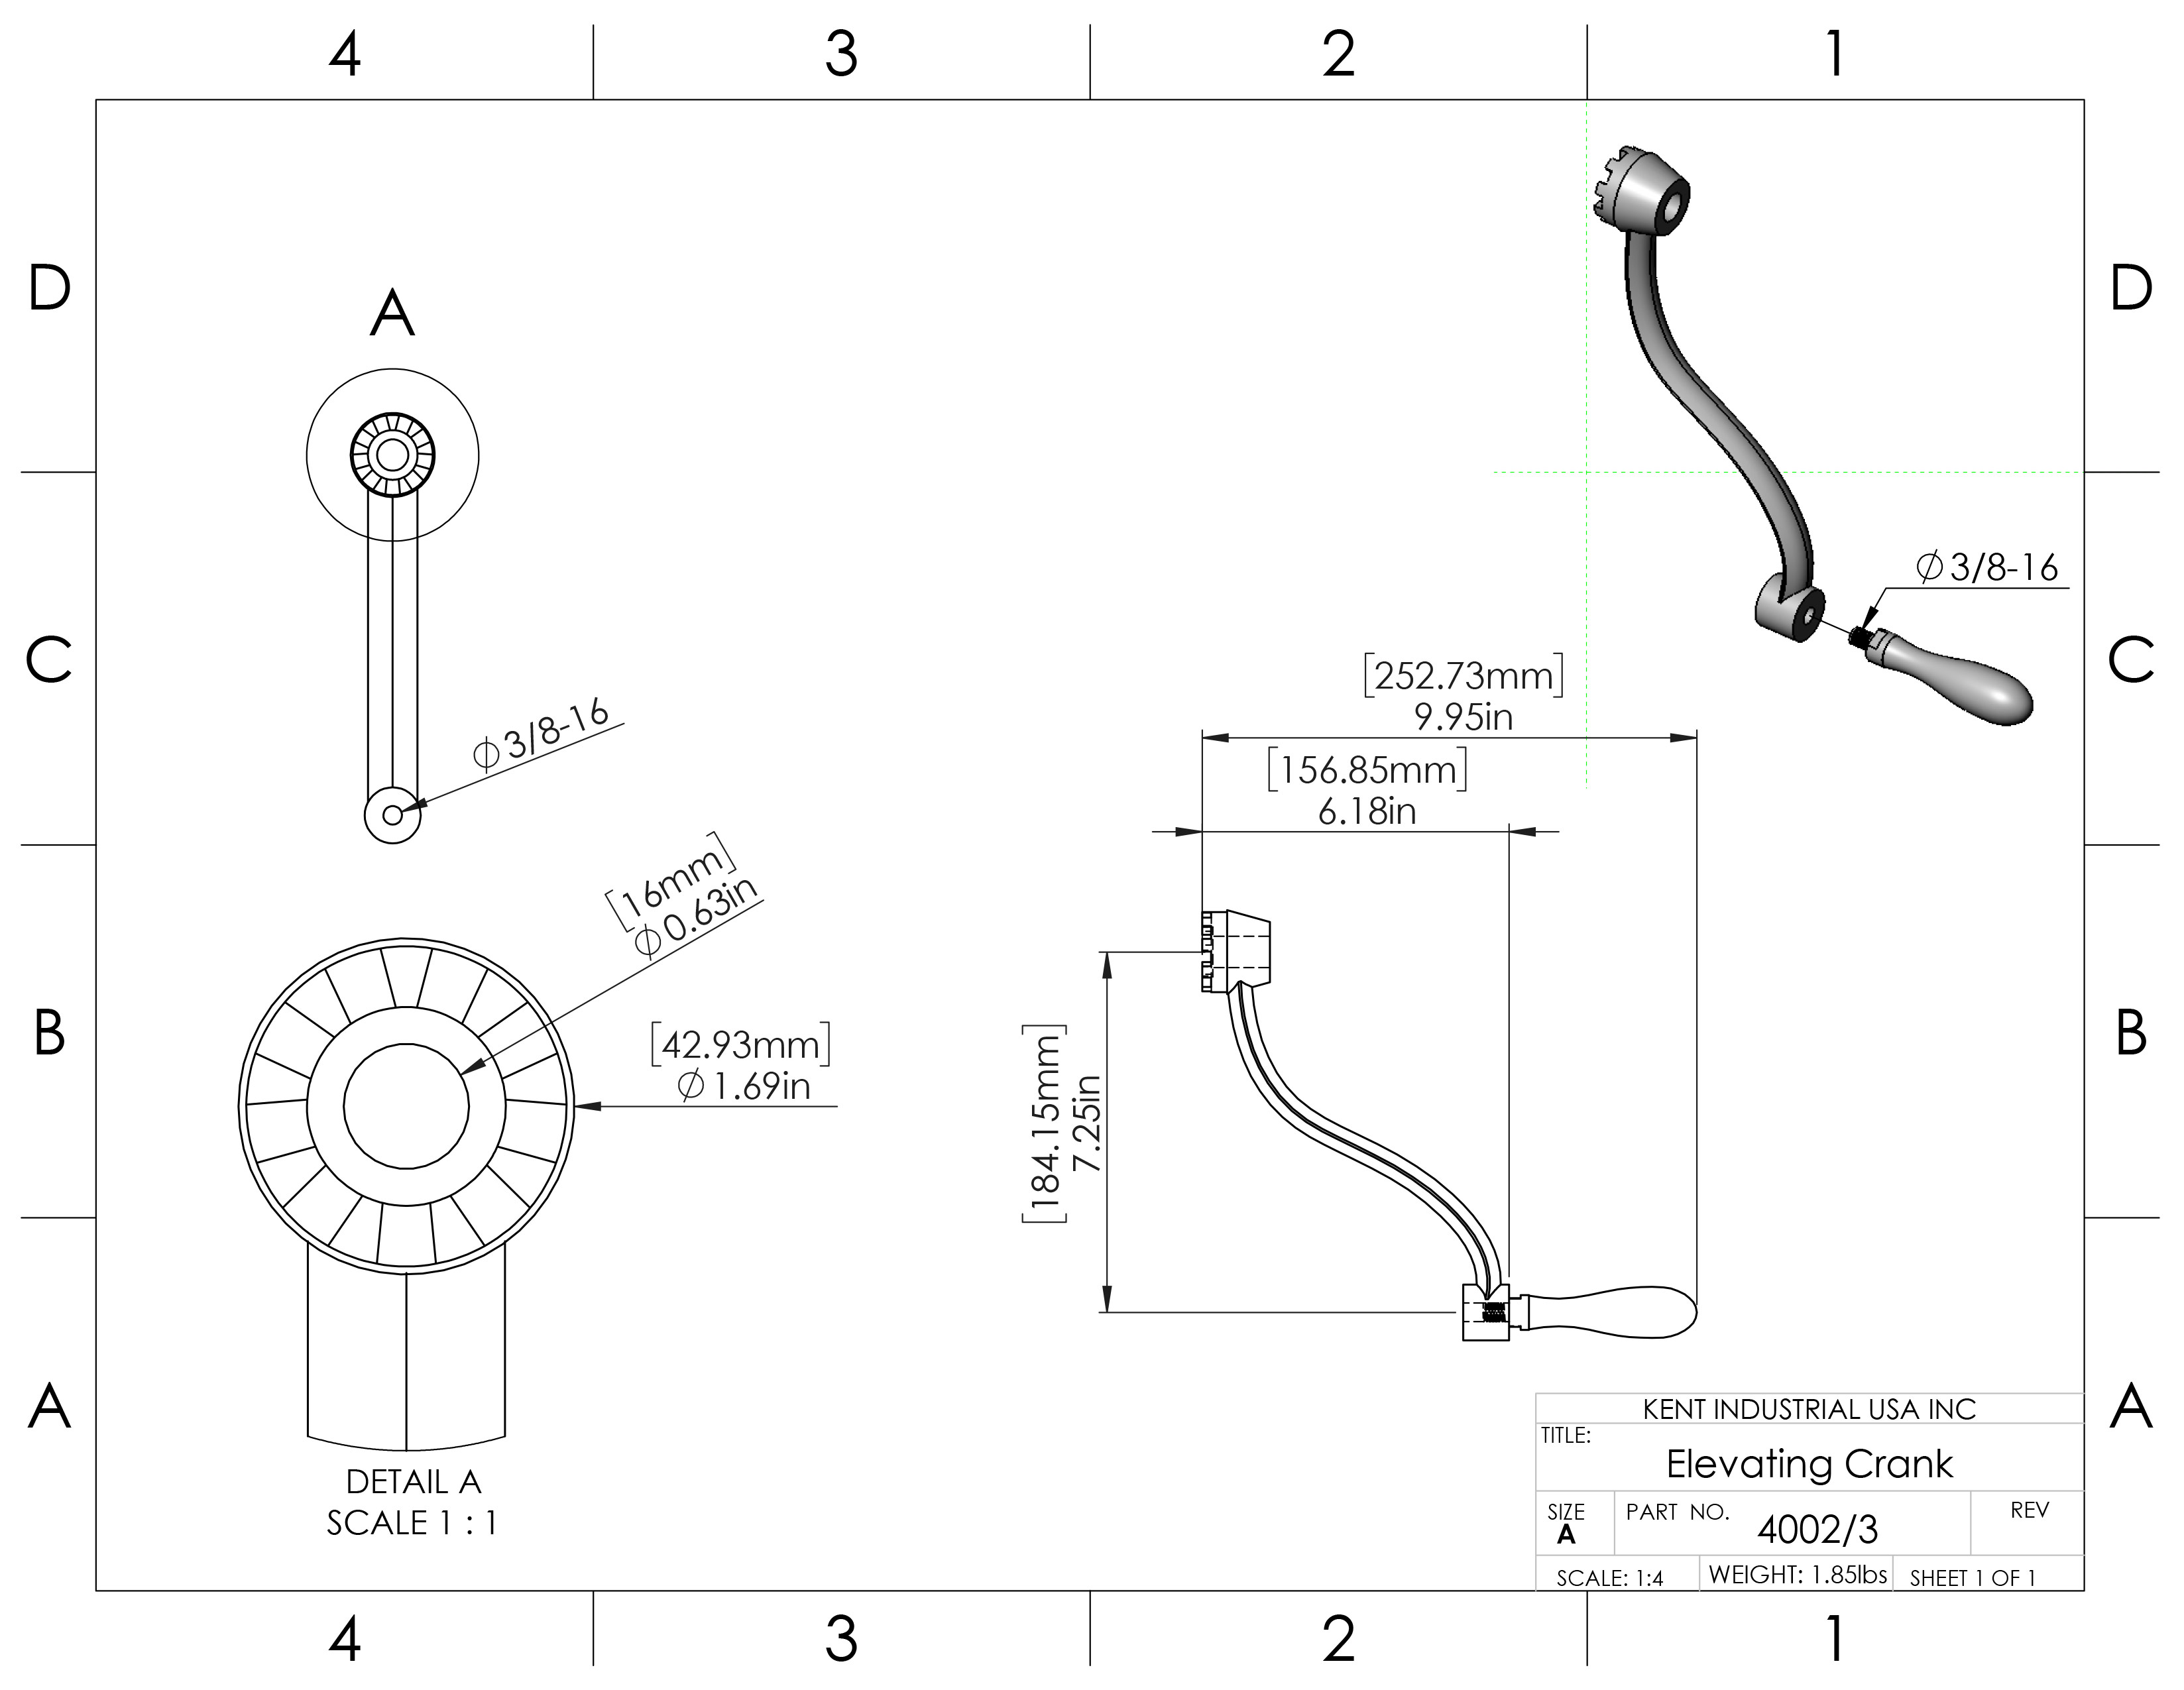 Elevating Crank Handle Assembly For Mills 3 Kent